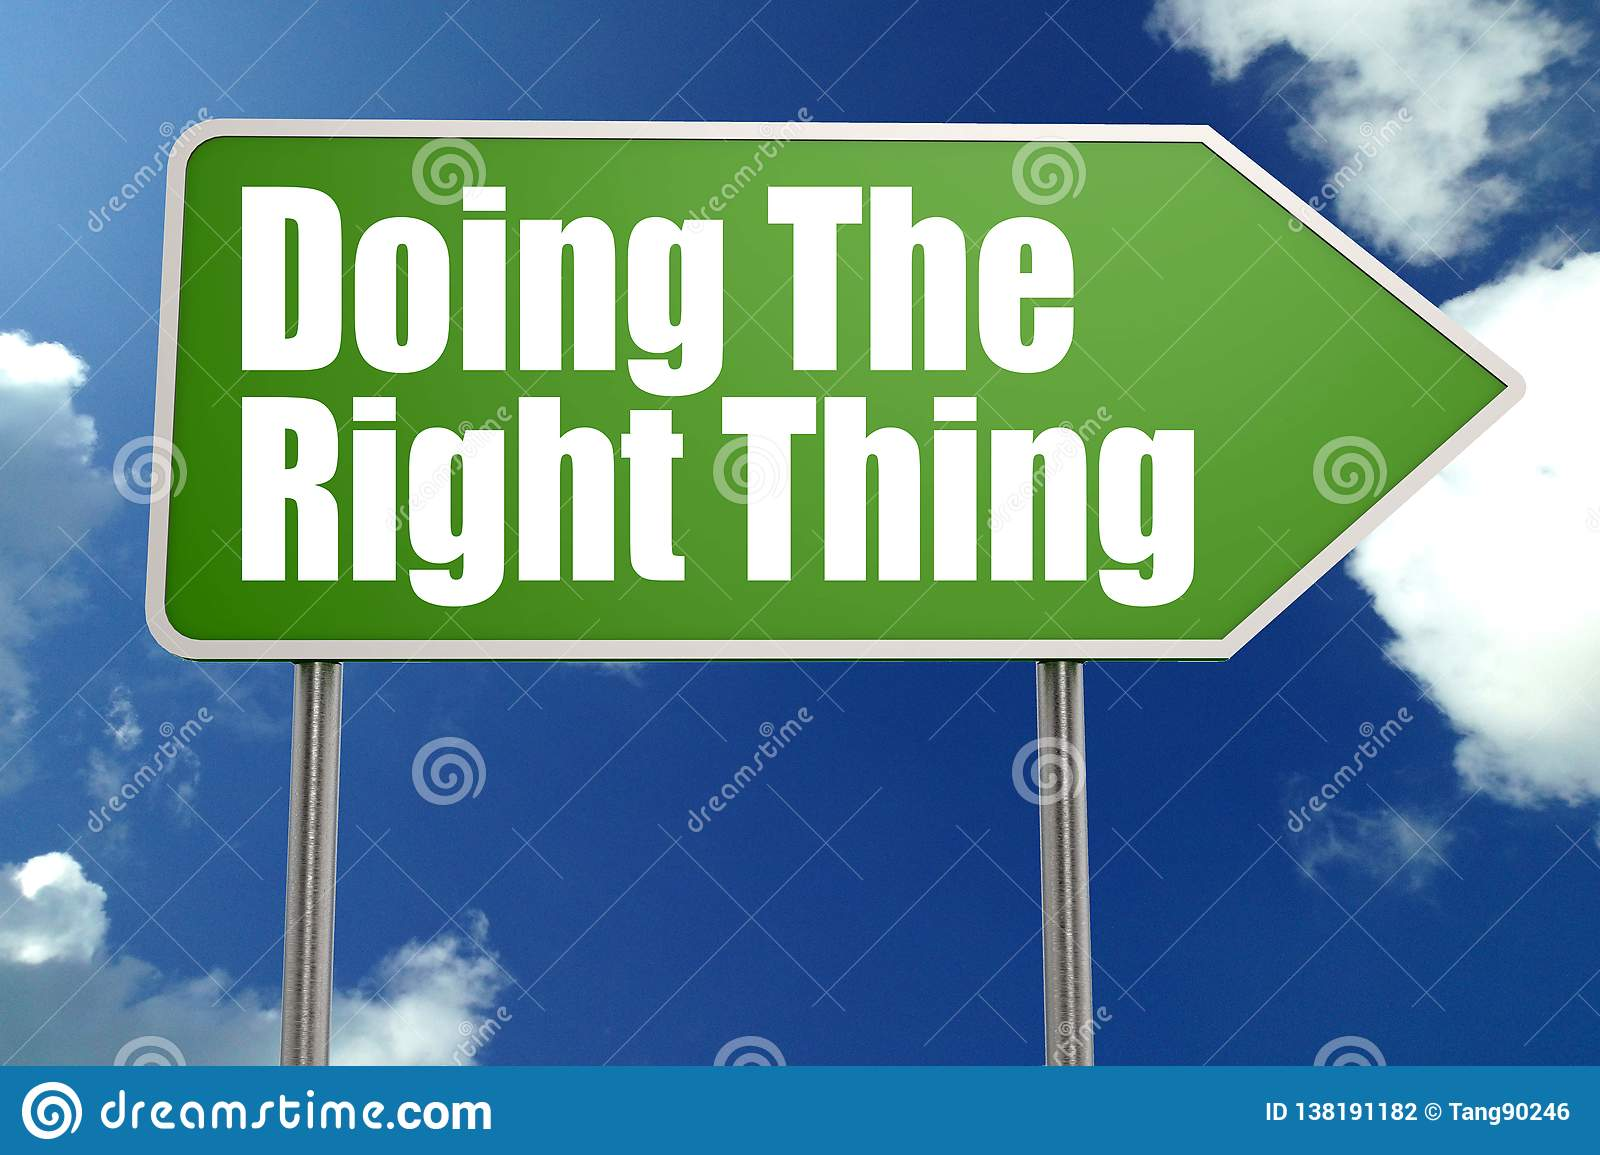 Doing The Right Thing Word With Green Road Sign Stock Illustration -  Illustration of inspiration, notice: 138191182